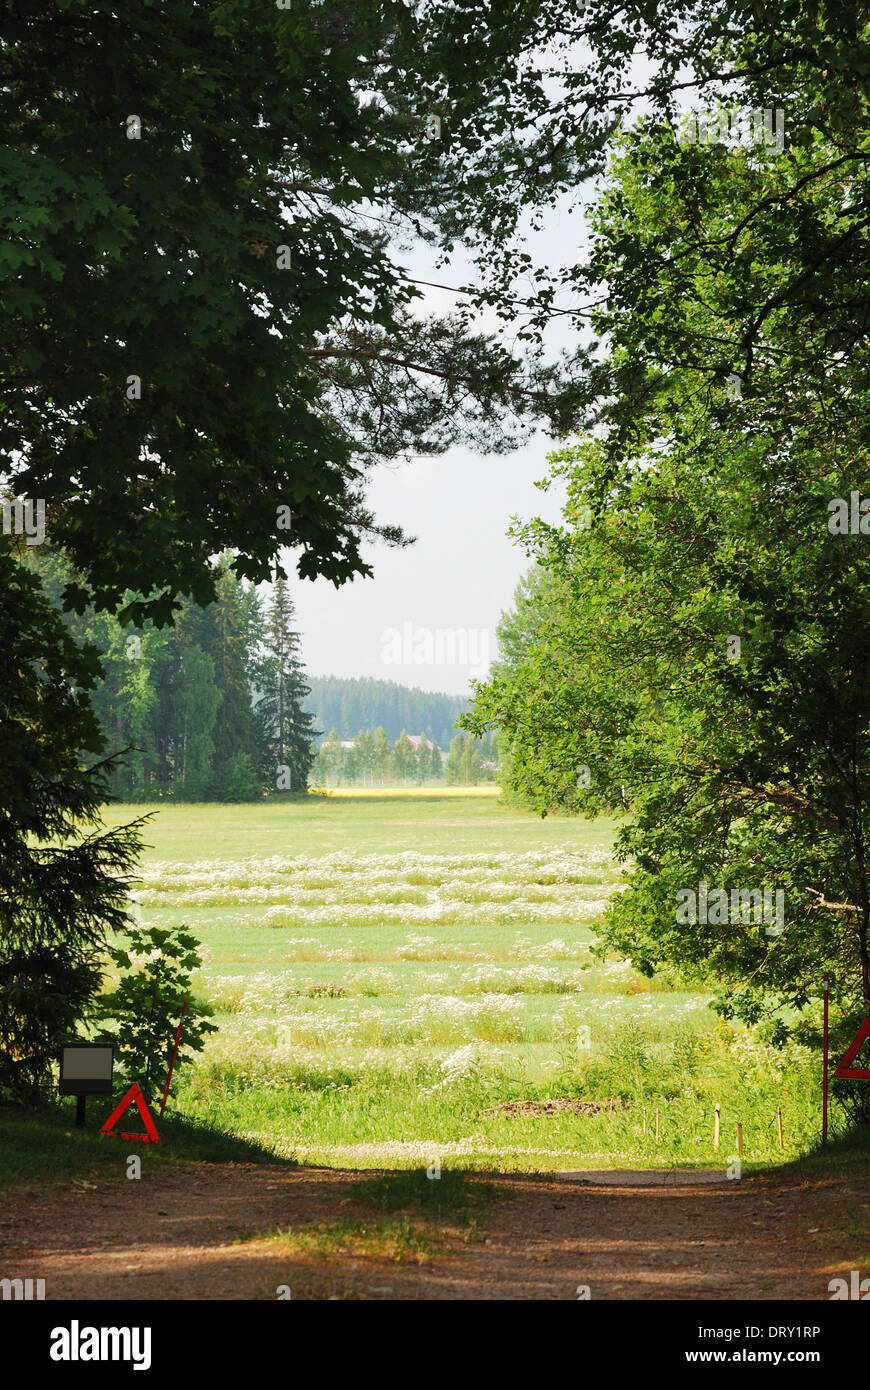 Hayfield through clearing in the woods - Stock Image